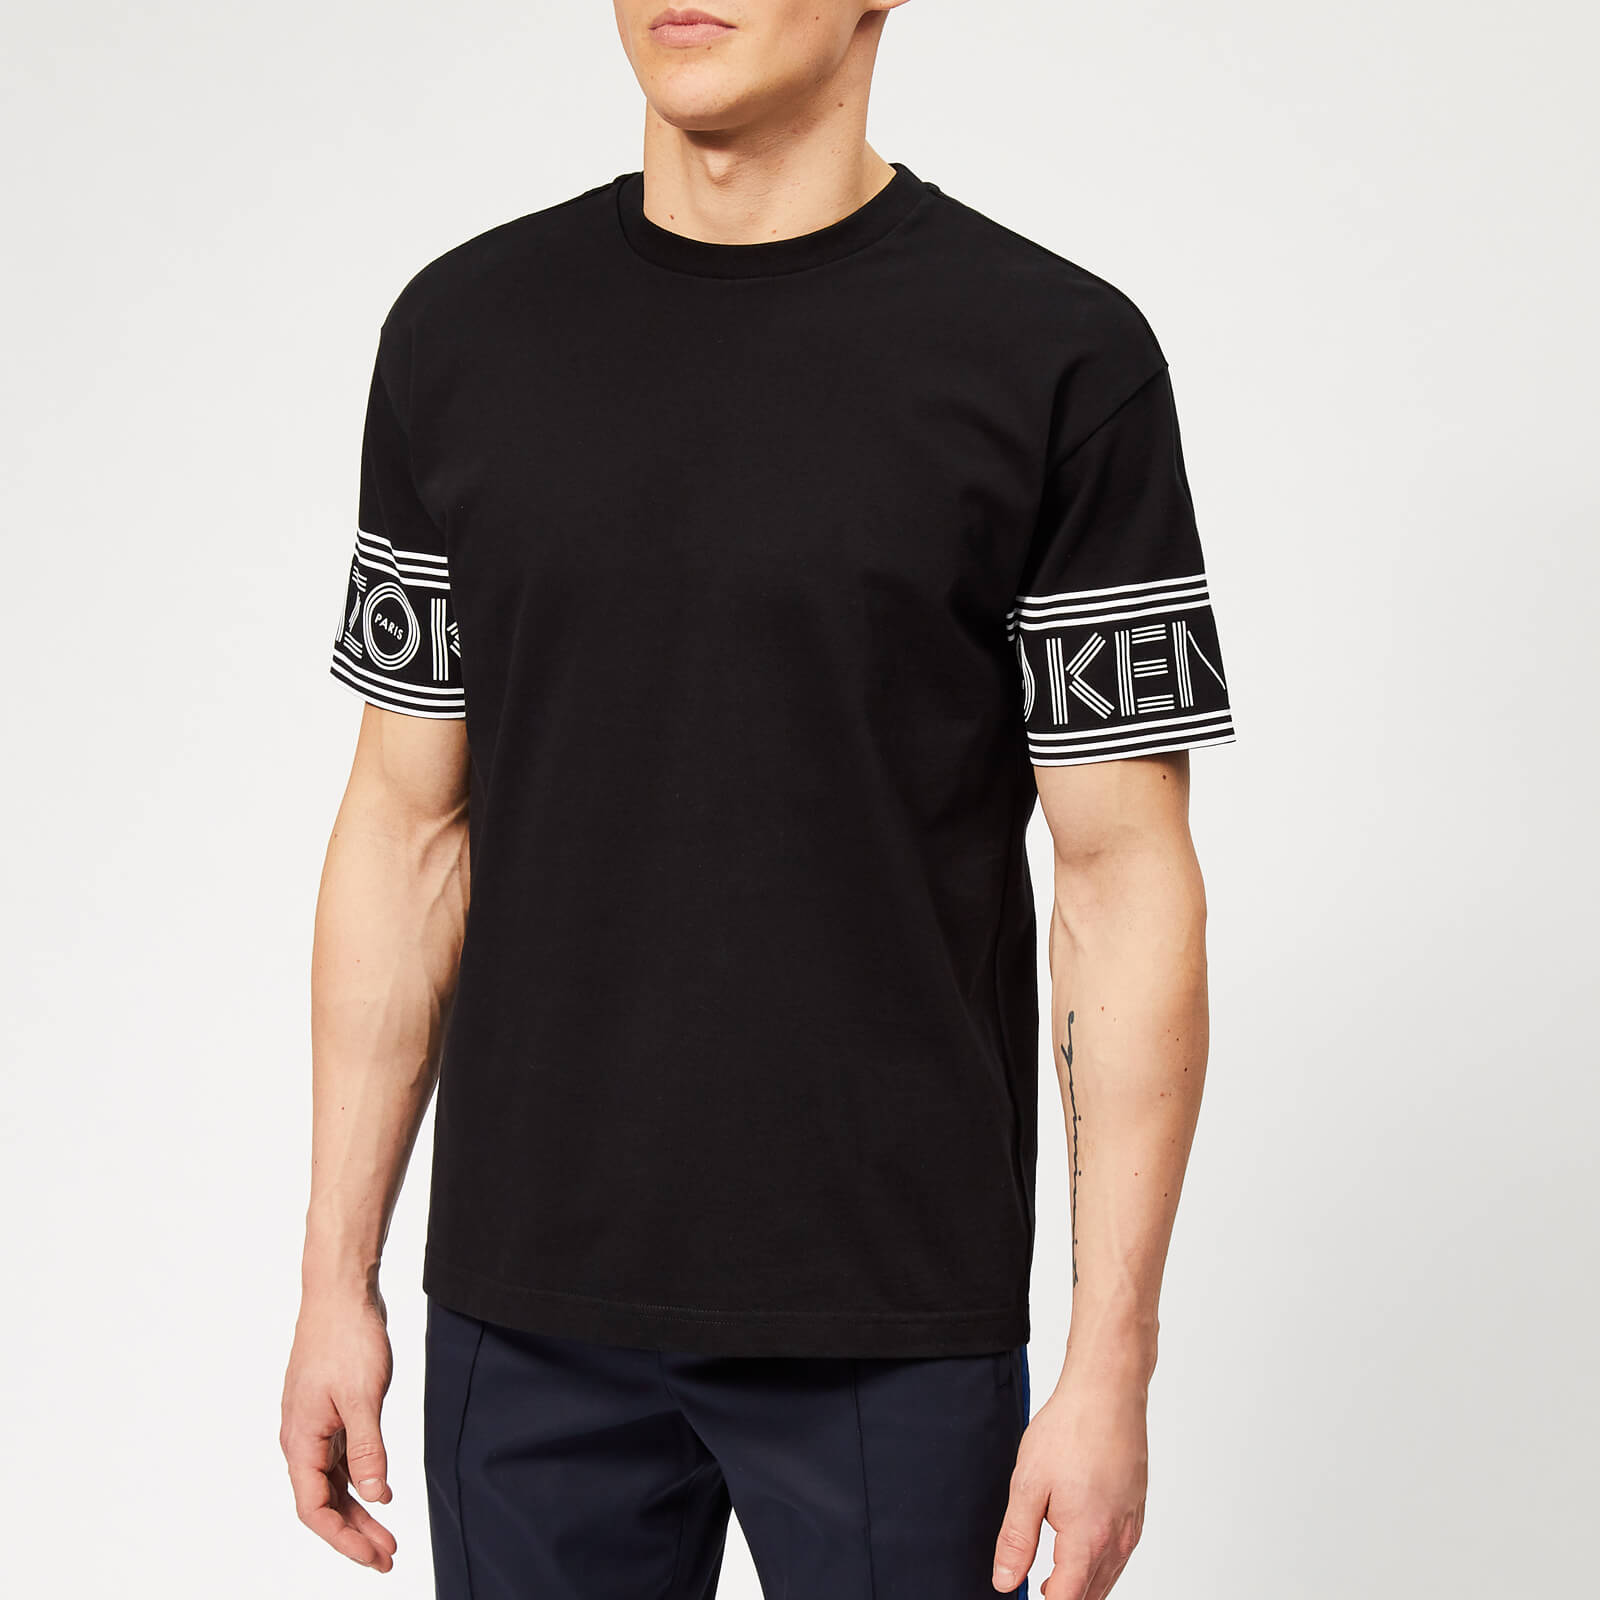 8885799fc KENZO Men's Sleeve Logo T-Shirt - Black - Free UK Delivery over £50